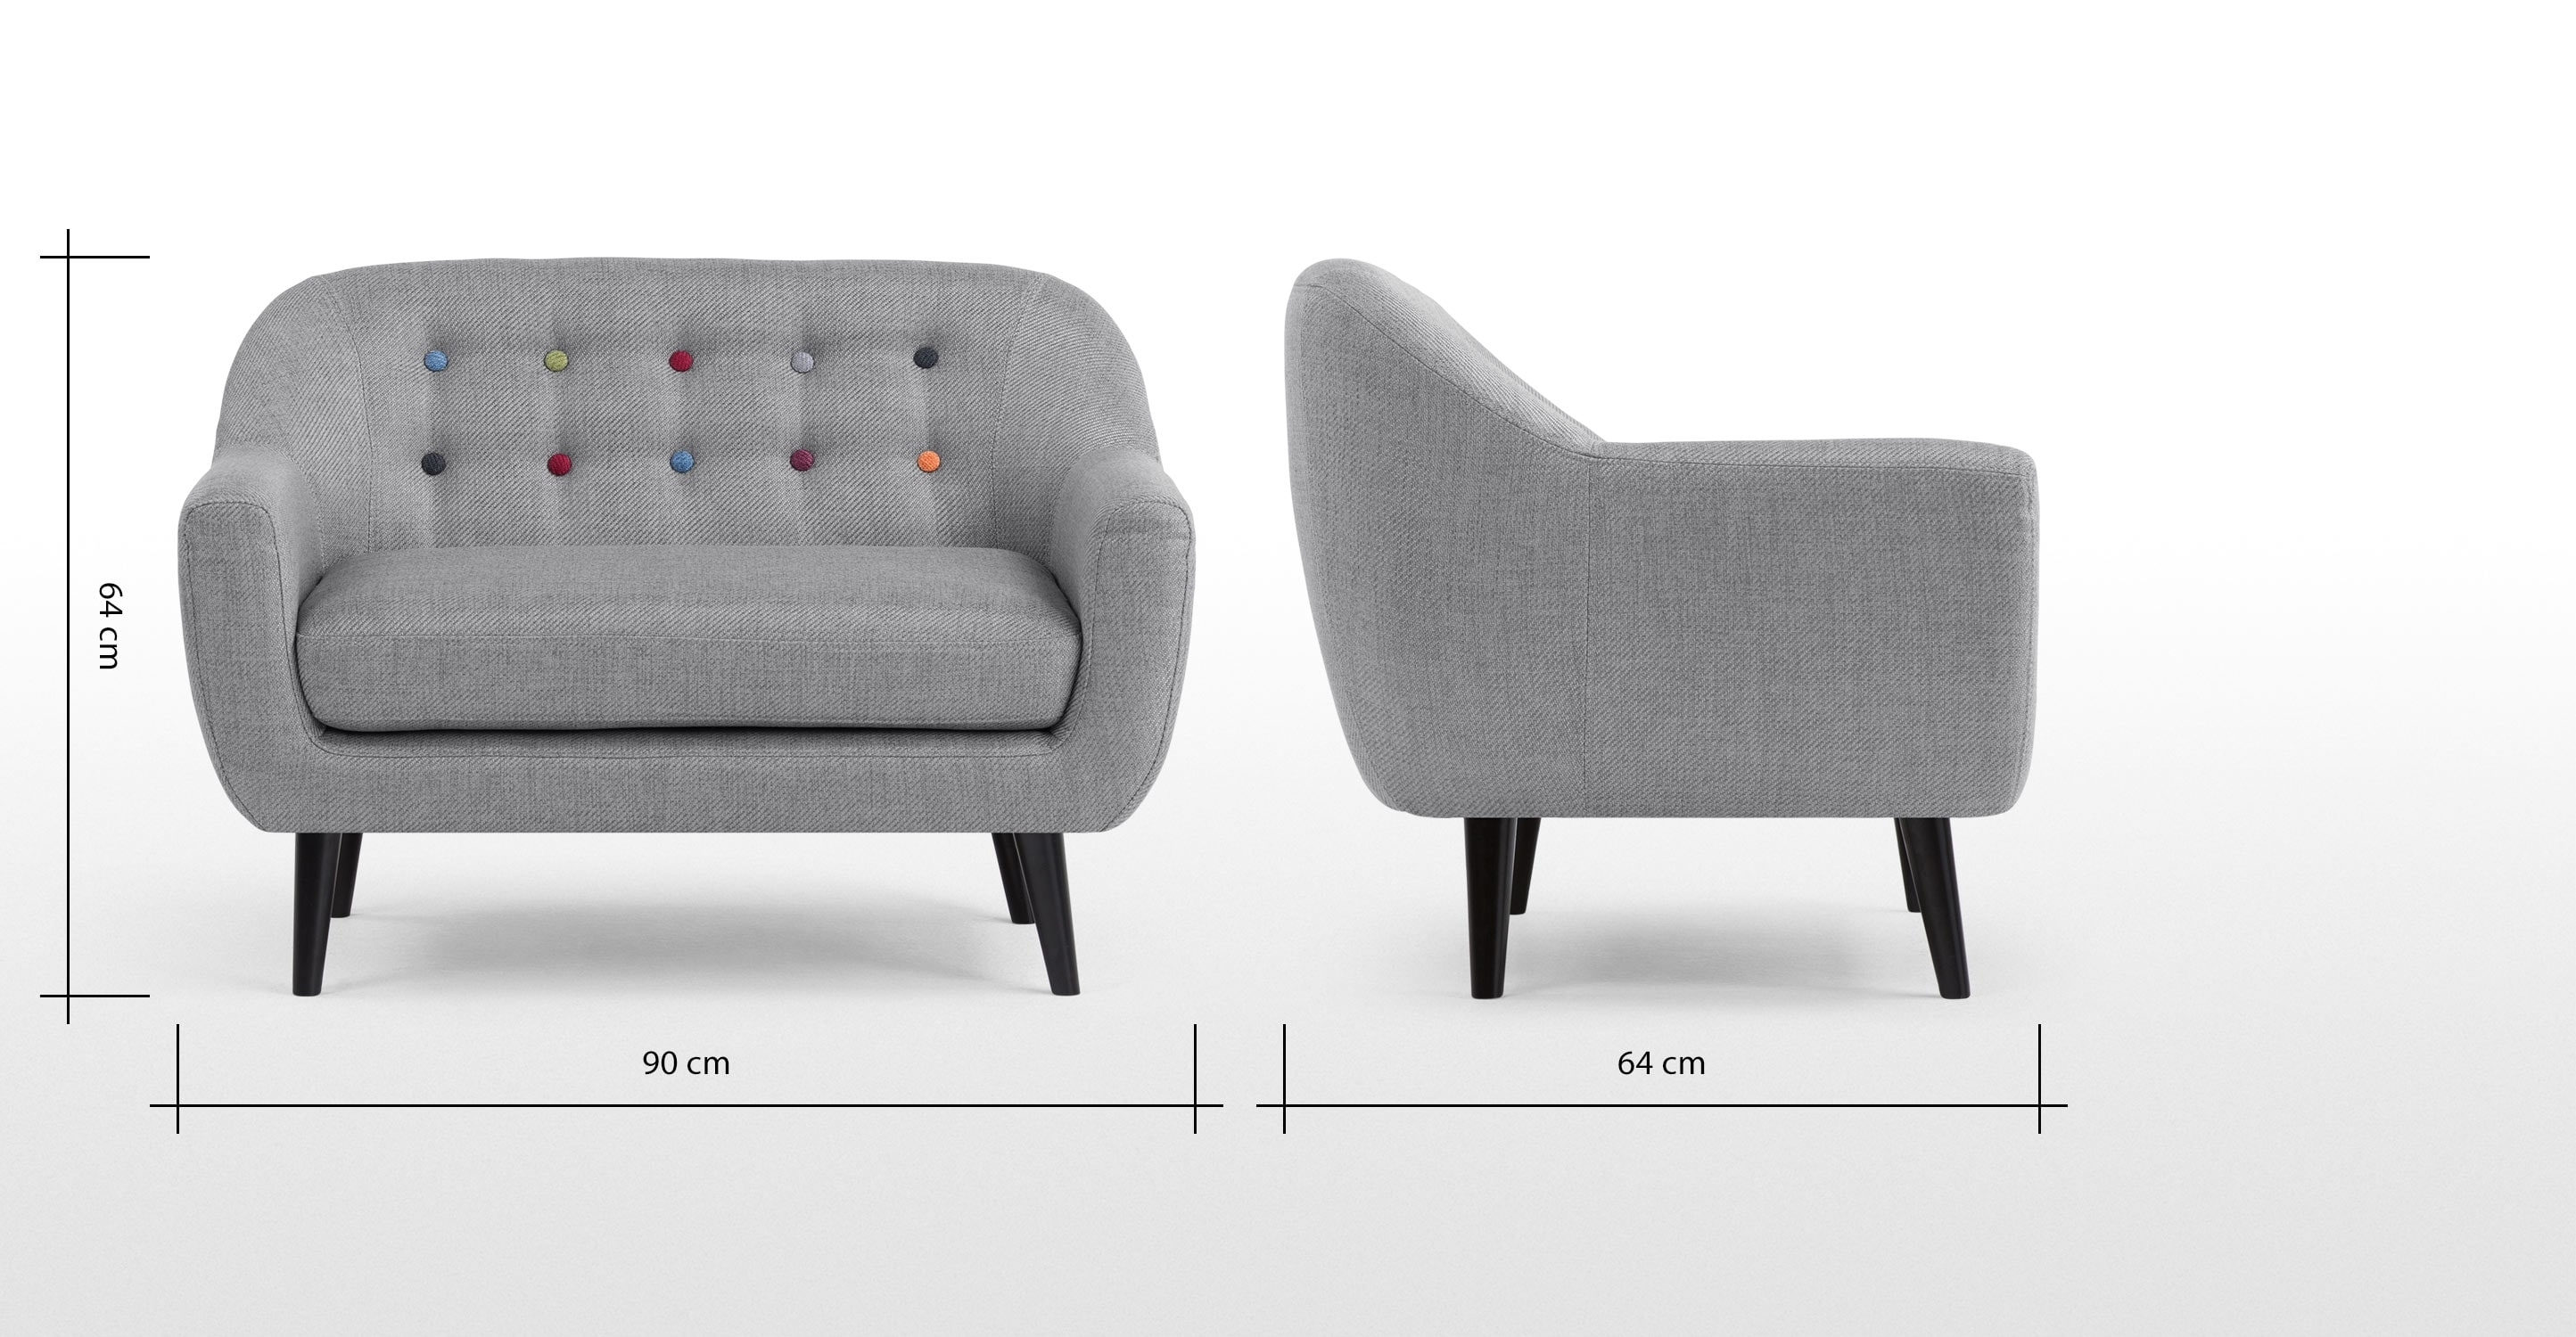 Awesome Mini Sofa 78 In Modern Sofa Ideas With Mini Sofa within Mini Sofas (Image 1 of 10)